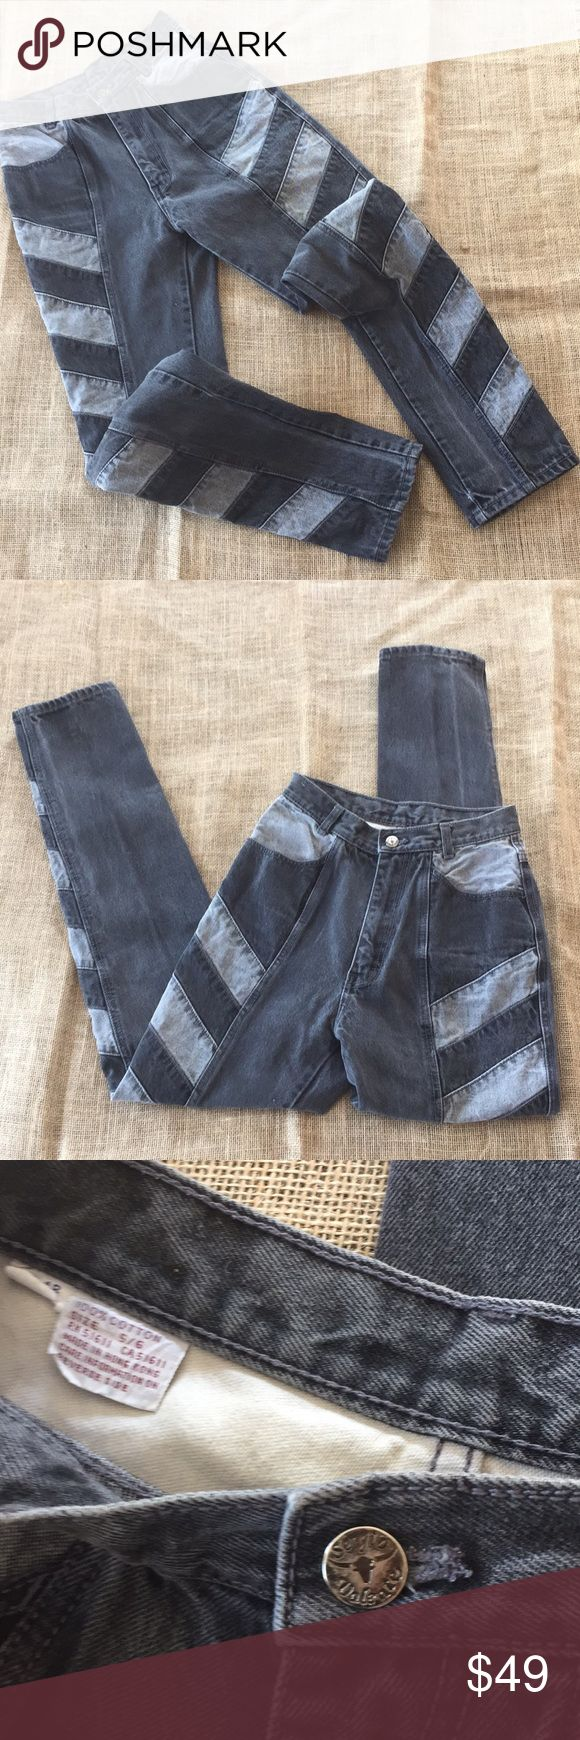 """Vintage Super High Waisted Gray Mom Jeans 😍 Vintage Super High Waisted Gray Mom Jeans 😍. In great preloved condition. Very unique light gray and darker gray panels on the sides. 100% cotton. Size tag says 5/6. Please check all the measurements that I've provided to make sure they fit you! Waist-22.5"""", rise-11"""", inseam-29.5"""", leg opening-12"""" around, hips-35"""". Originally from Sergio Valente. There is a small spot of fray near the left leg hem. Zip and button fly. Sergio Valente Jeans…"""